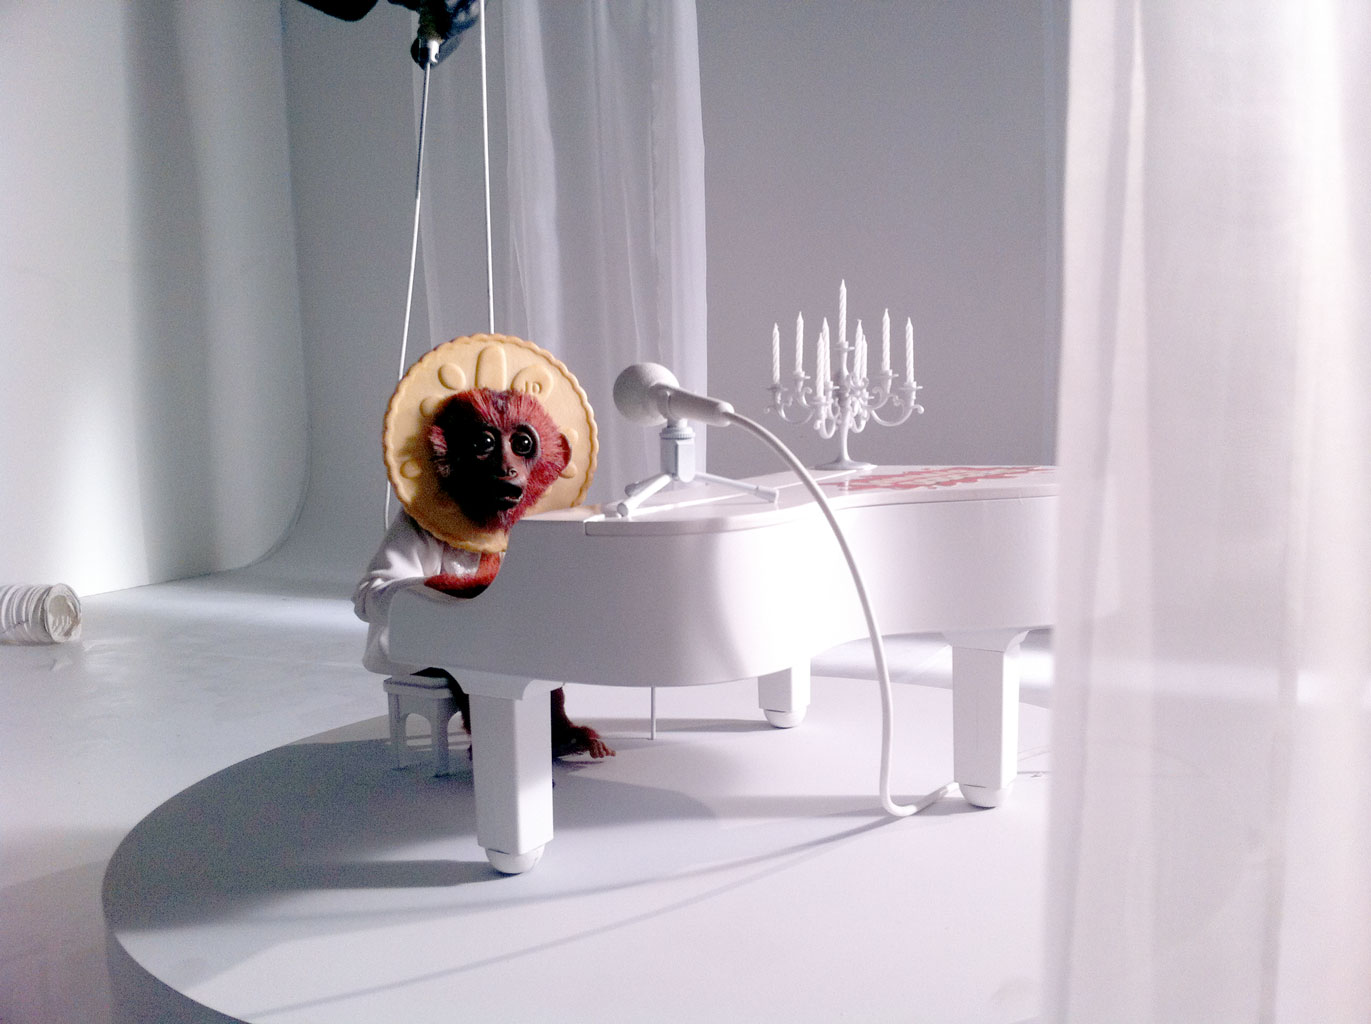 Jammie Dodger puppet still from TV ad